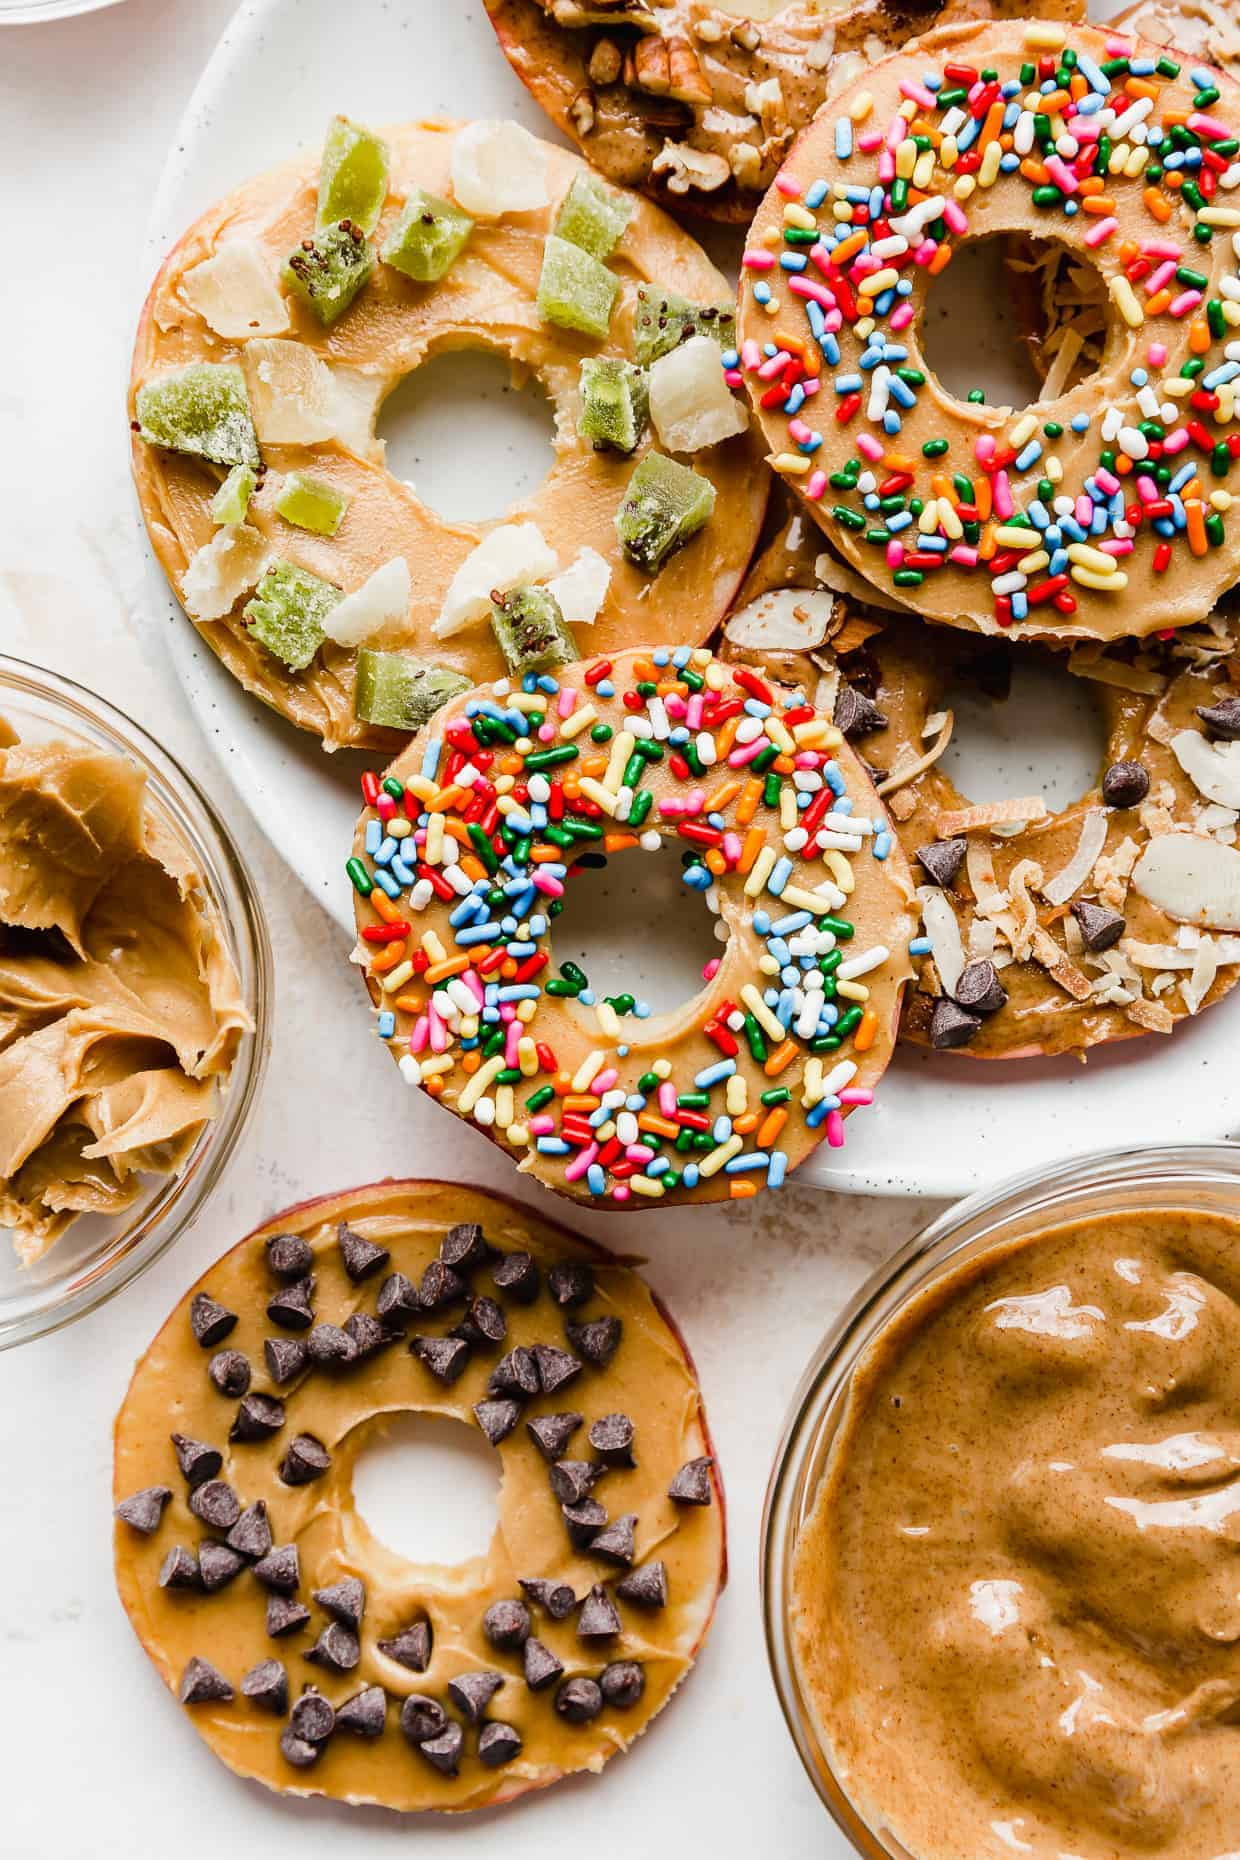 """Slices of apples cut into round """"donuts"""" topped with peanut butter, sprinkles, chocolate chips."""